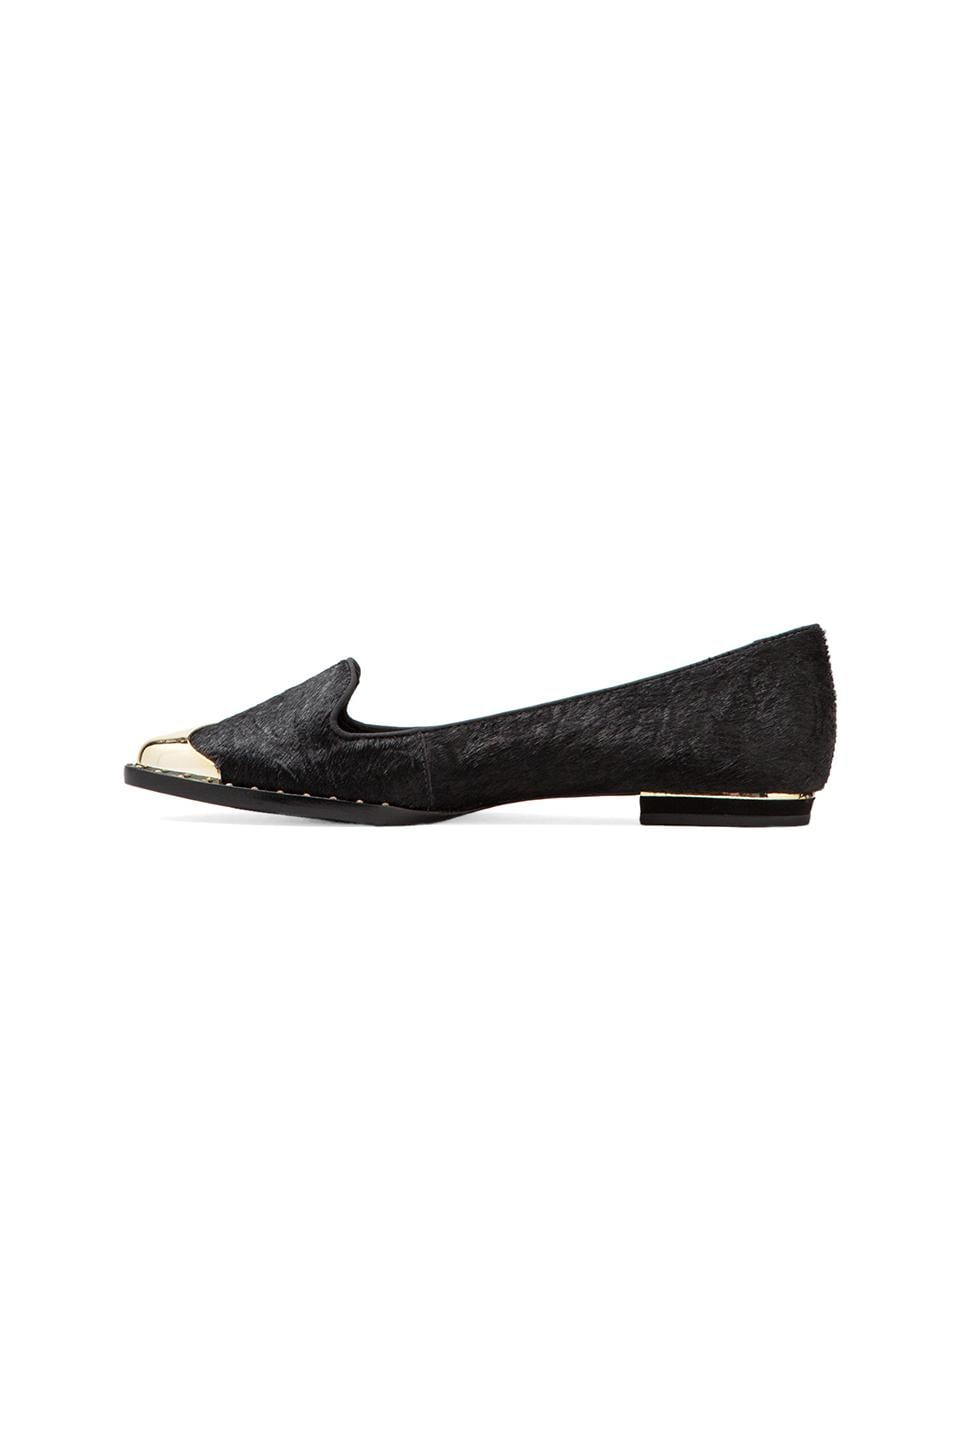 Schutz Bahia Loafer with Calf Fur in Black